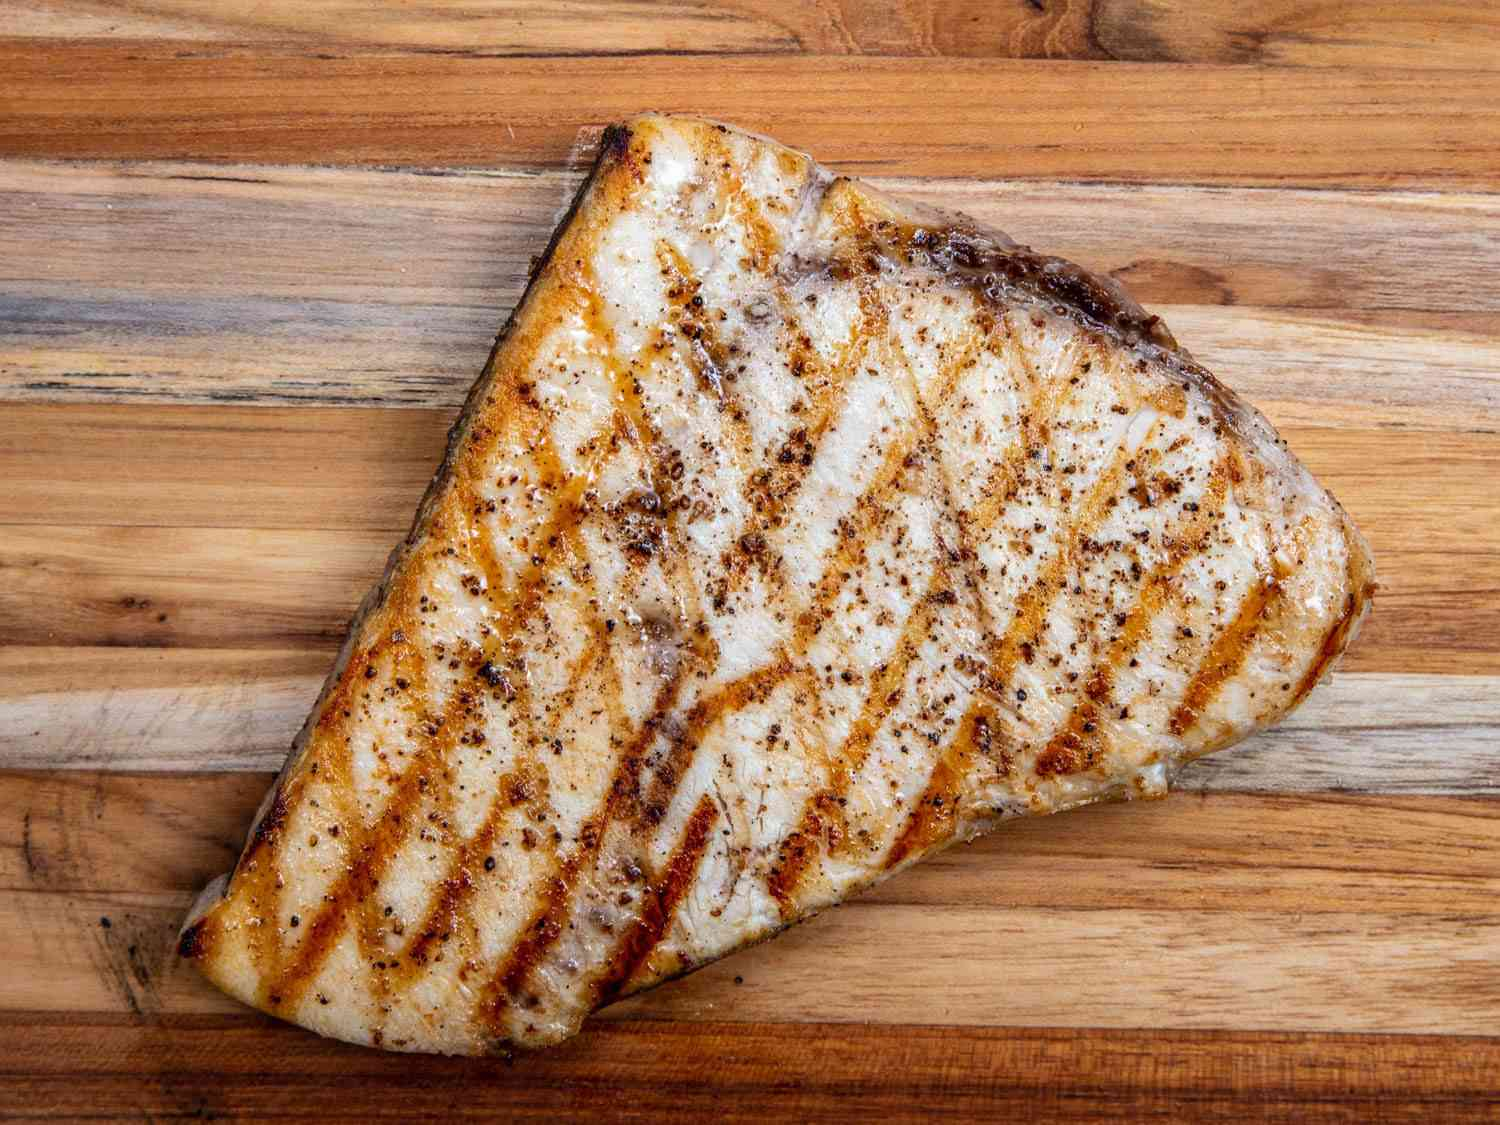 A piece of grilled swordfish steak on a wooden cutting board, ready to be served